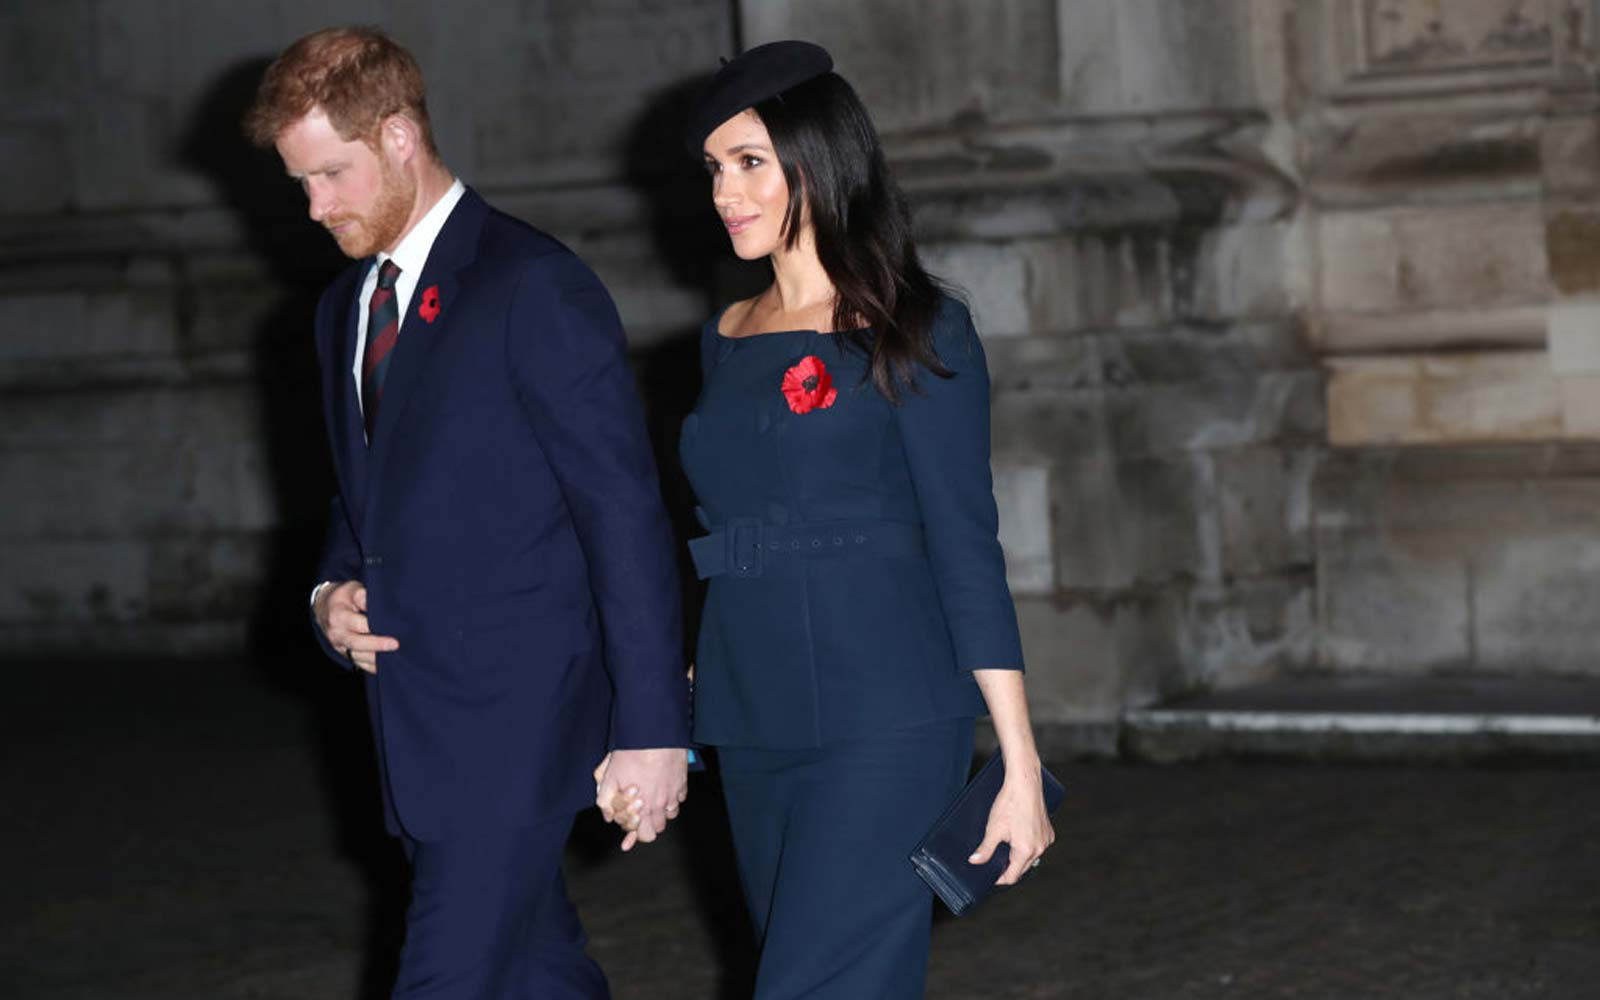 The Duke and Duchess of Sussex leave Westminster Abbey, London, after attending a National Service to mark the centenary of the Armistice